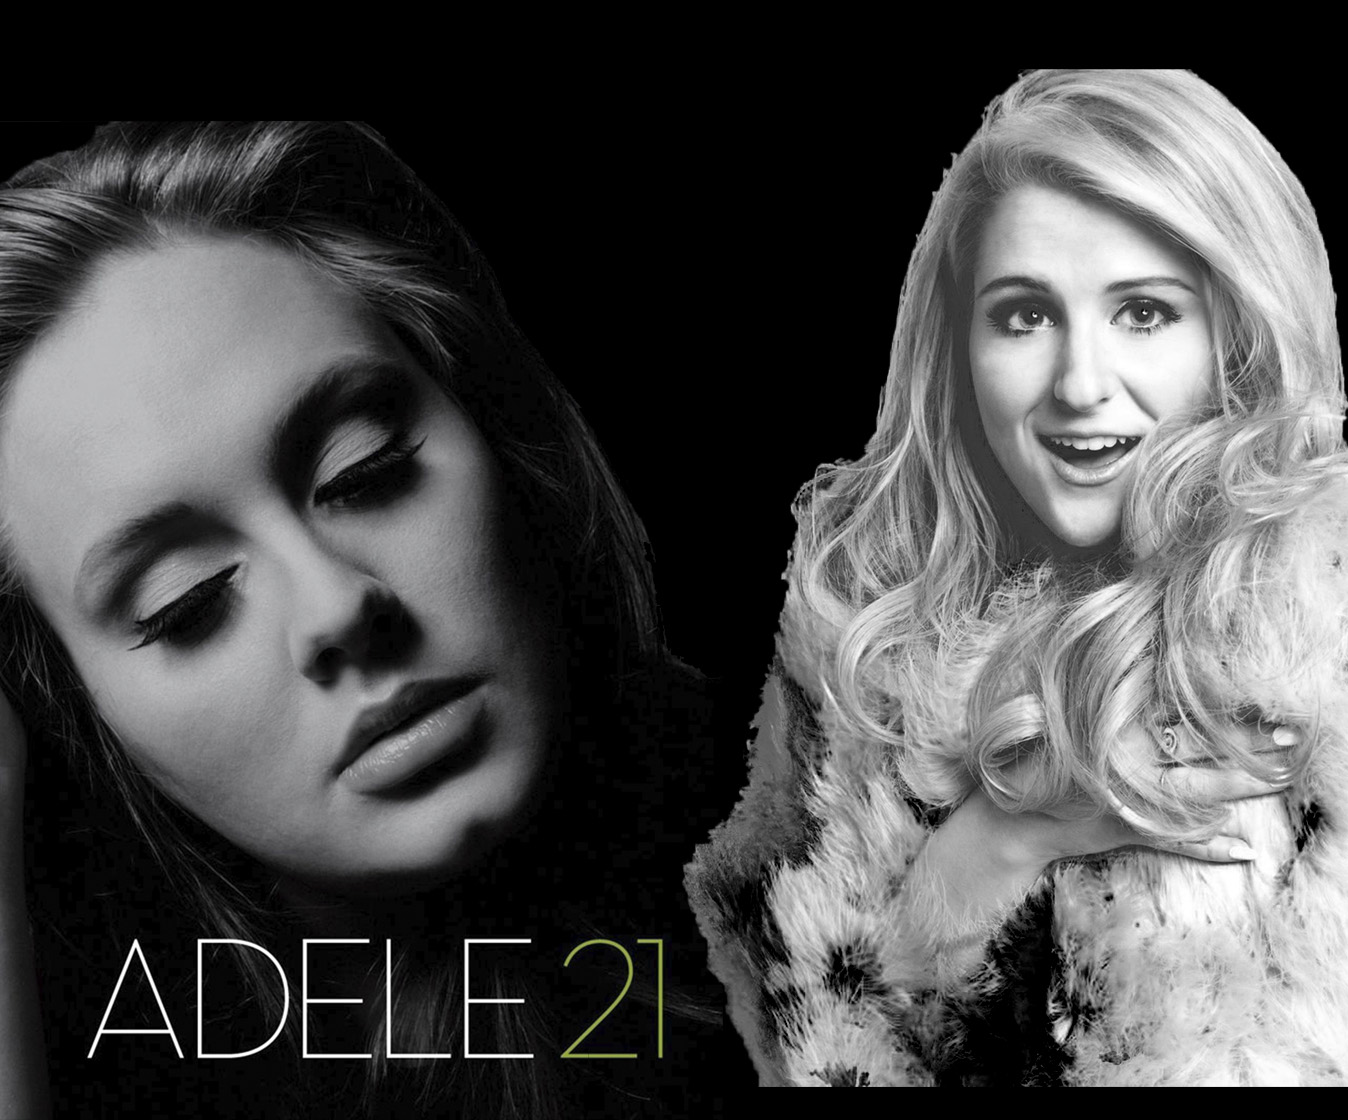 Adele vs Meghan Trainor - All about the deep - HalfHeartedly Mashup